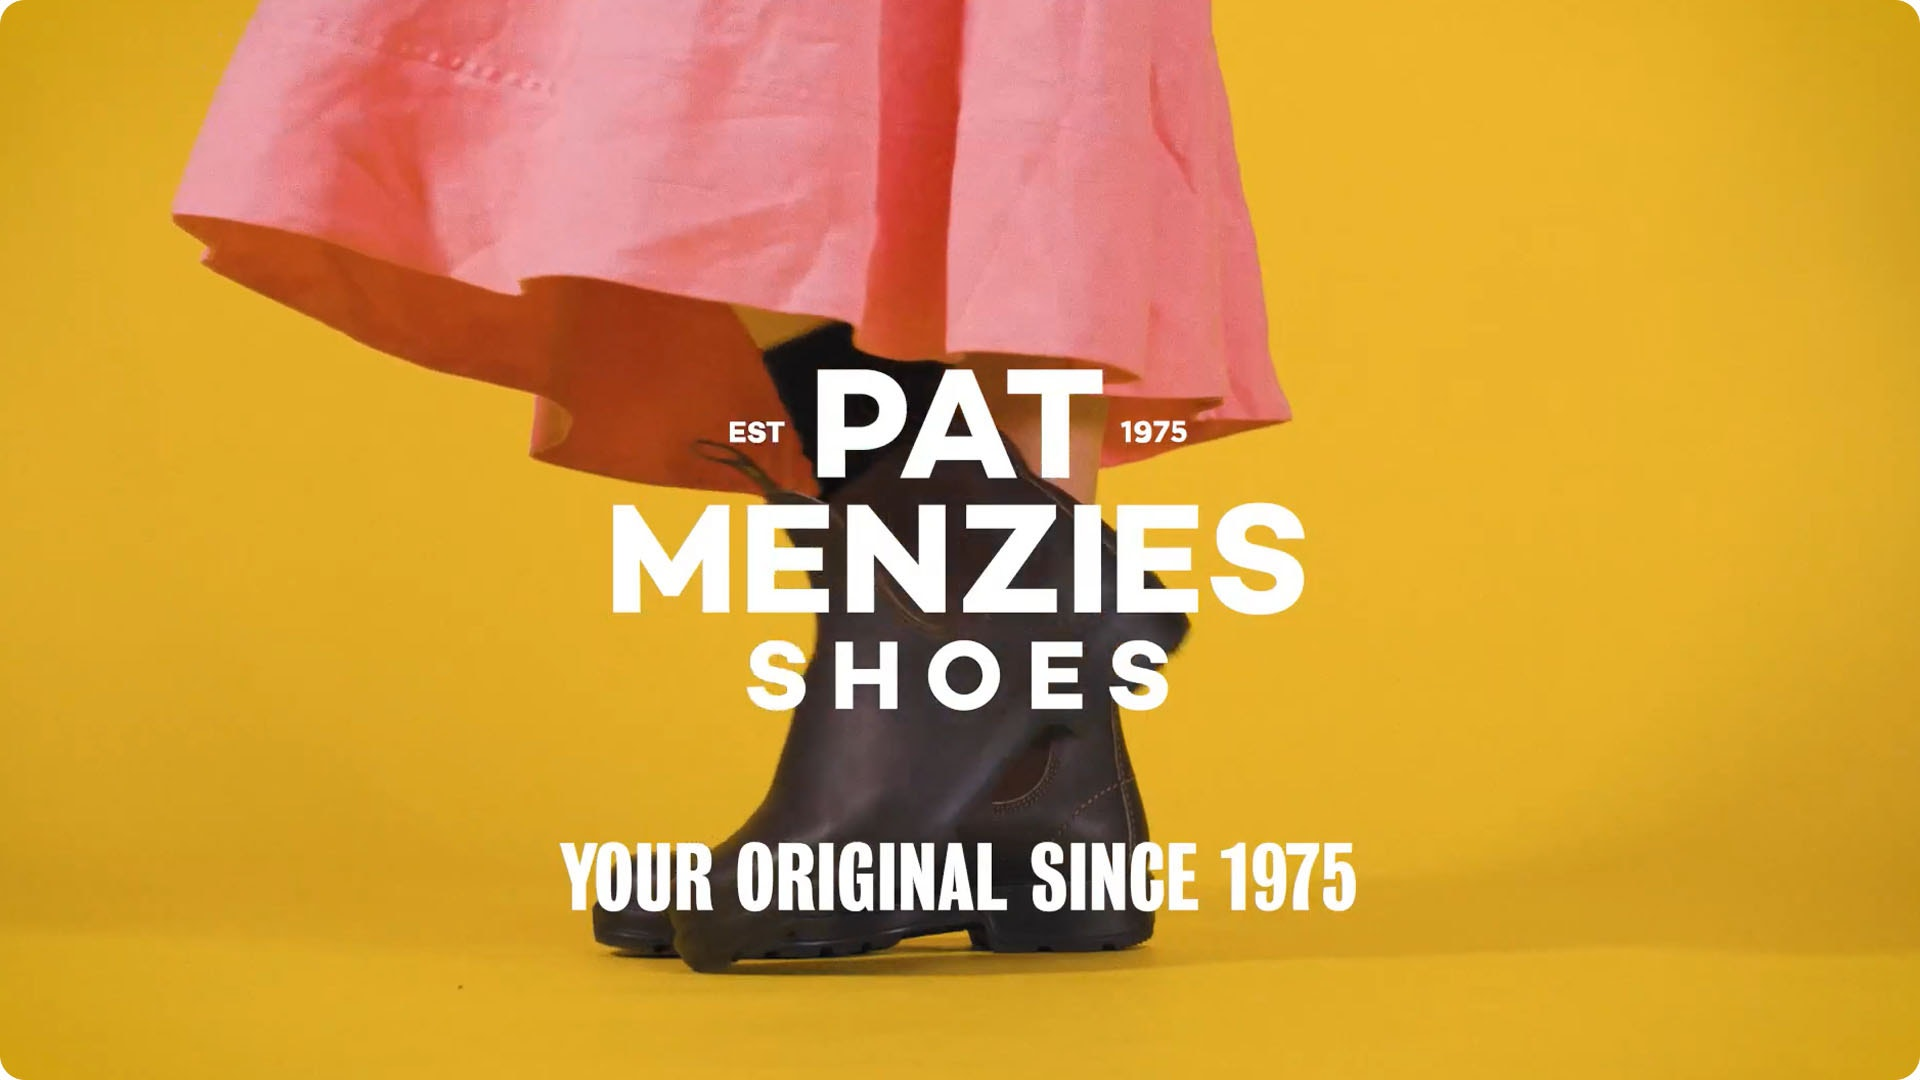 Pat Menzies - Home of Iconic Footwear Brands since 1975